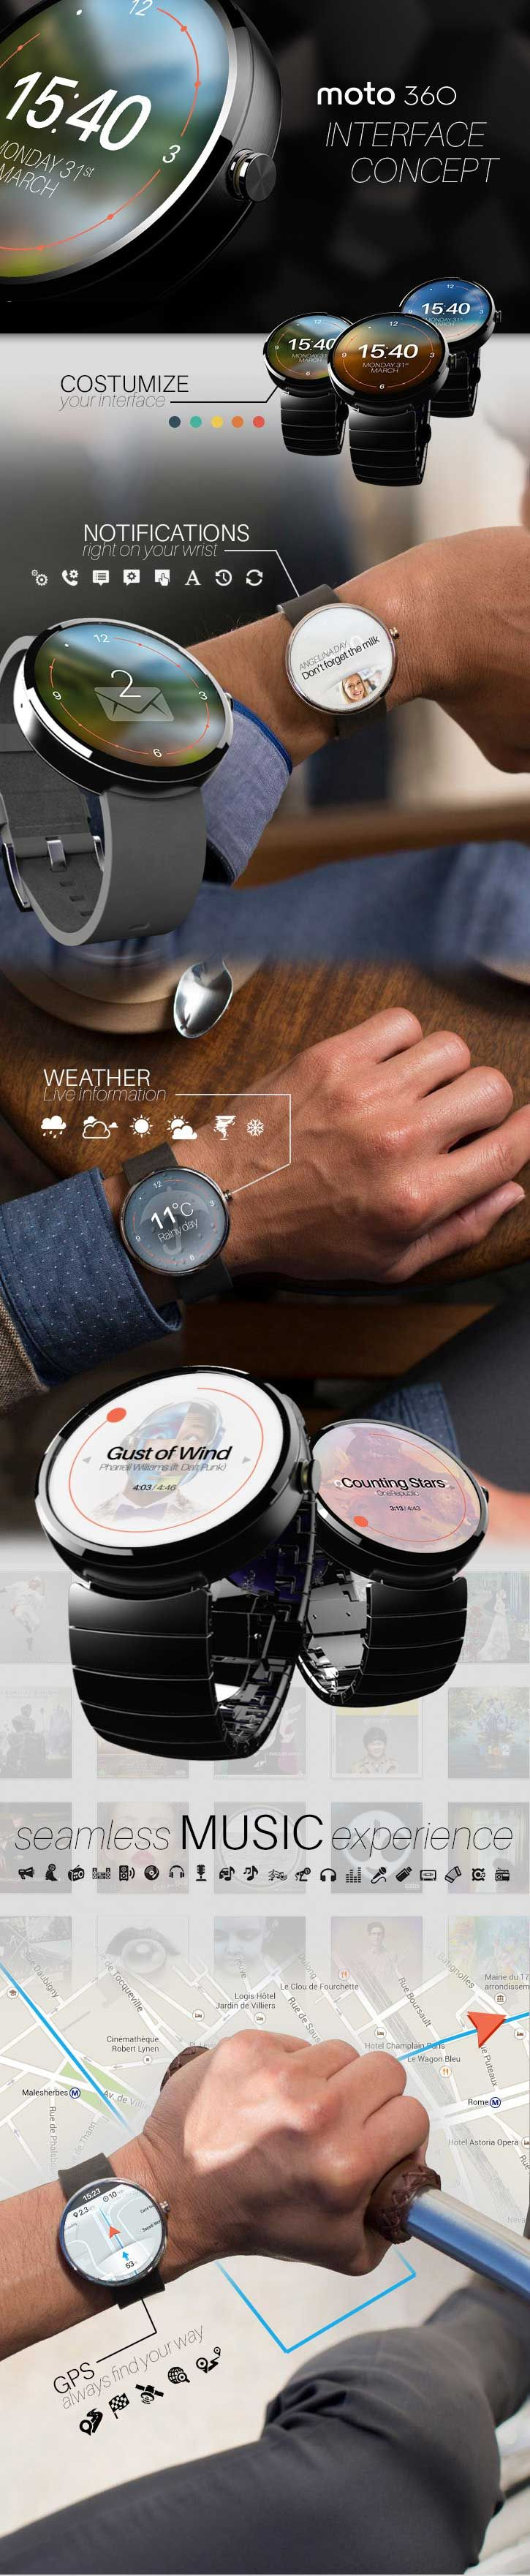 MOTO 360 UI Concept [Wearable Electronics: http://futuristicnews.com/tag/wearable/ Smart Watches: http://futuristicshop.com/category/smart-watches-wearable-electronics/]